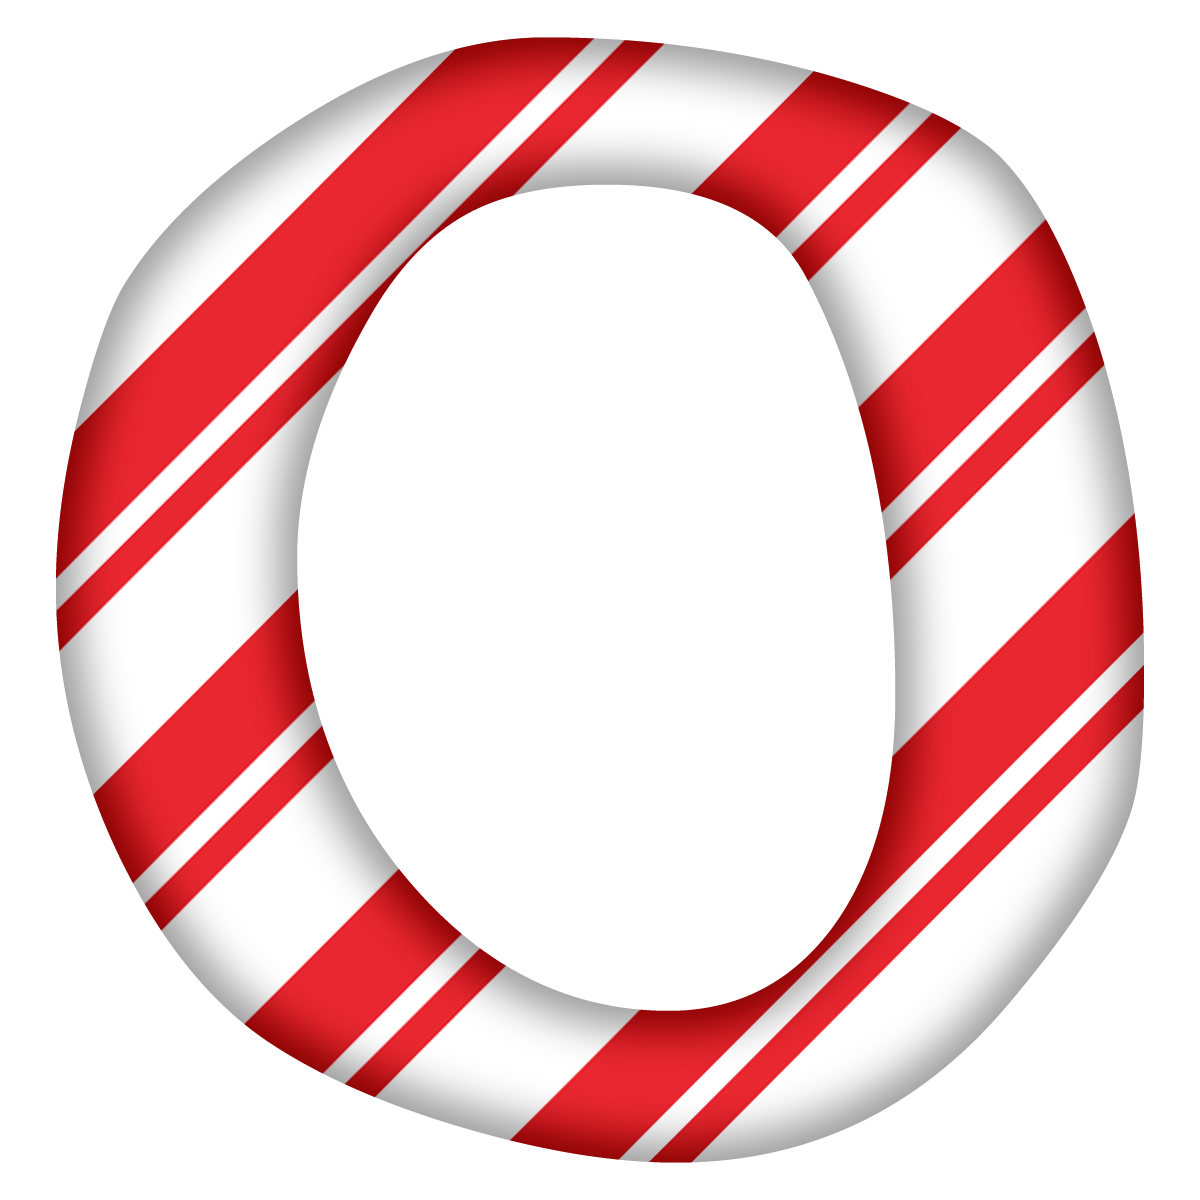 Kitchen Gadget 6 Letters Meaning Of Christmas Candy Cane Best Images Collections